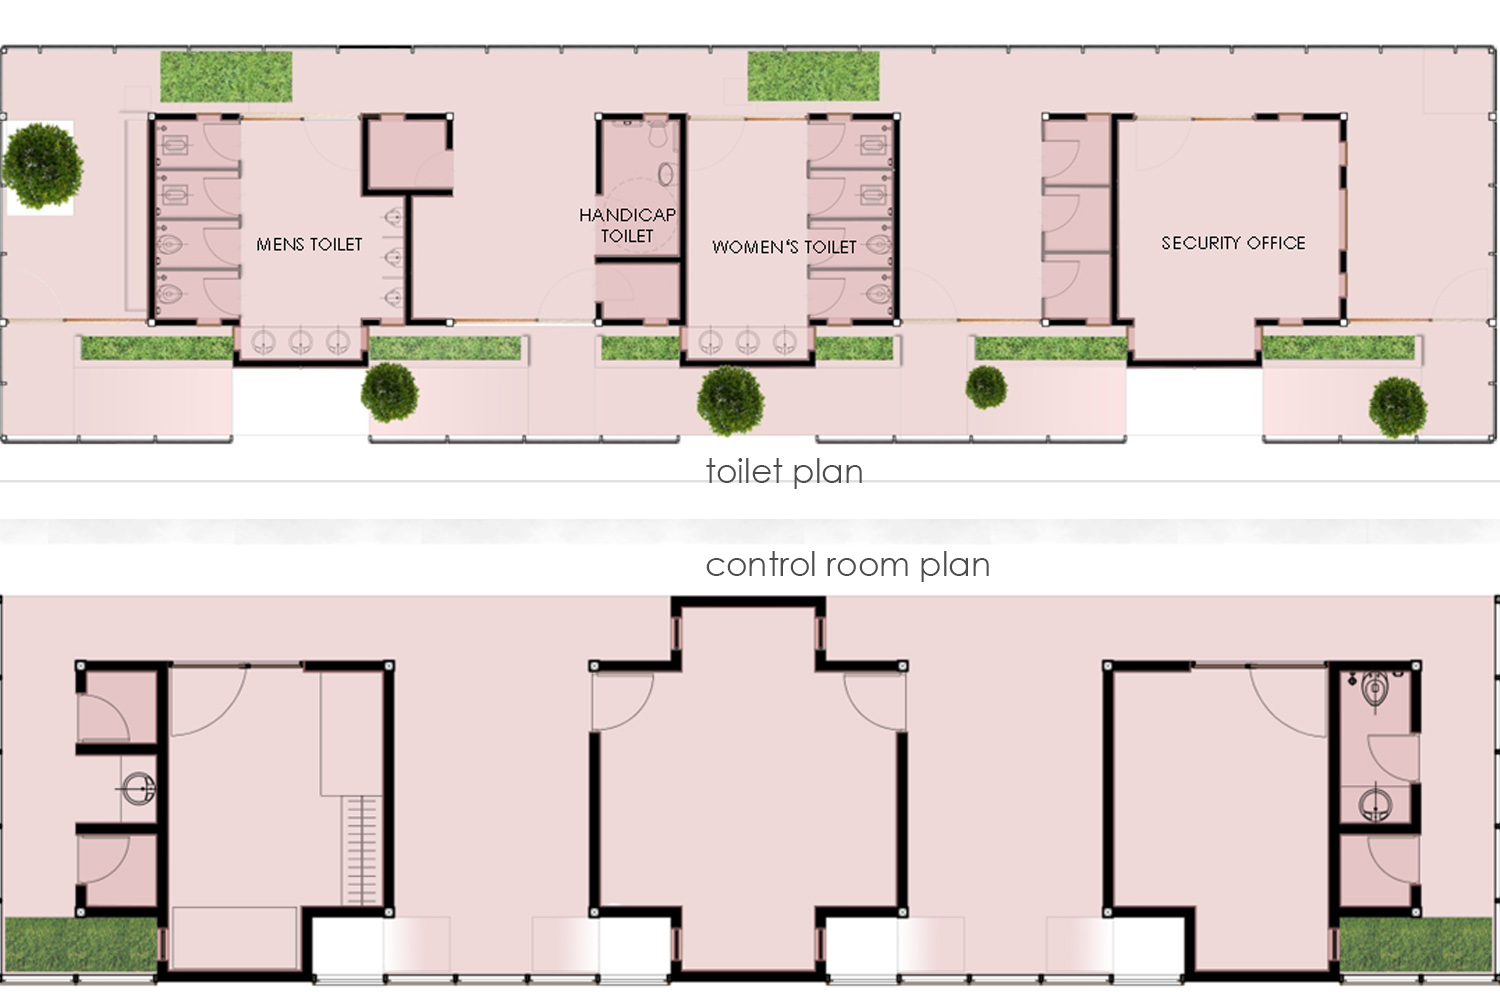 control room and toilet plan }